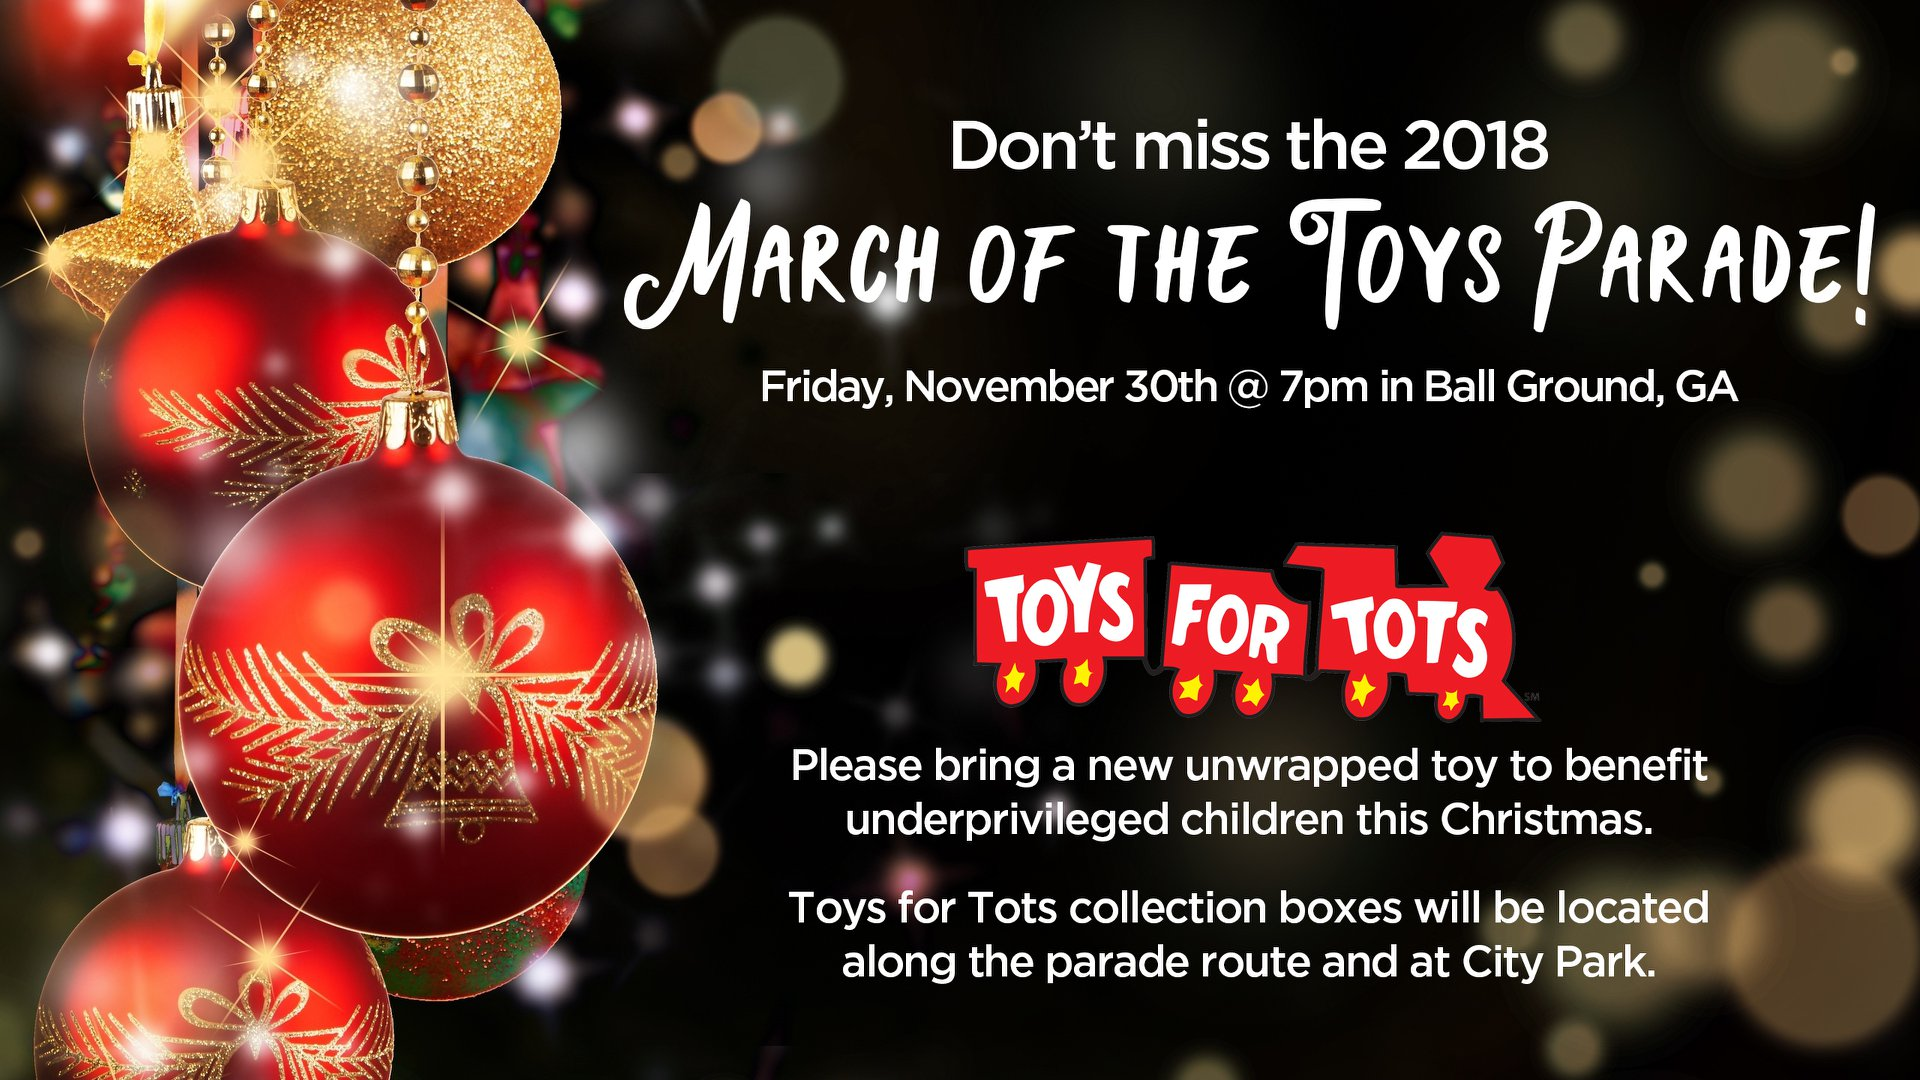 March of the Toys Parade BallGround flyer